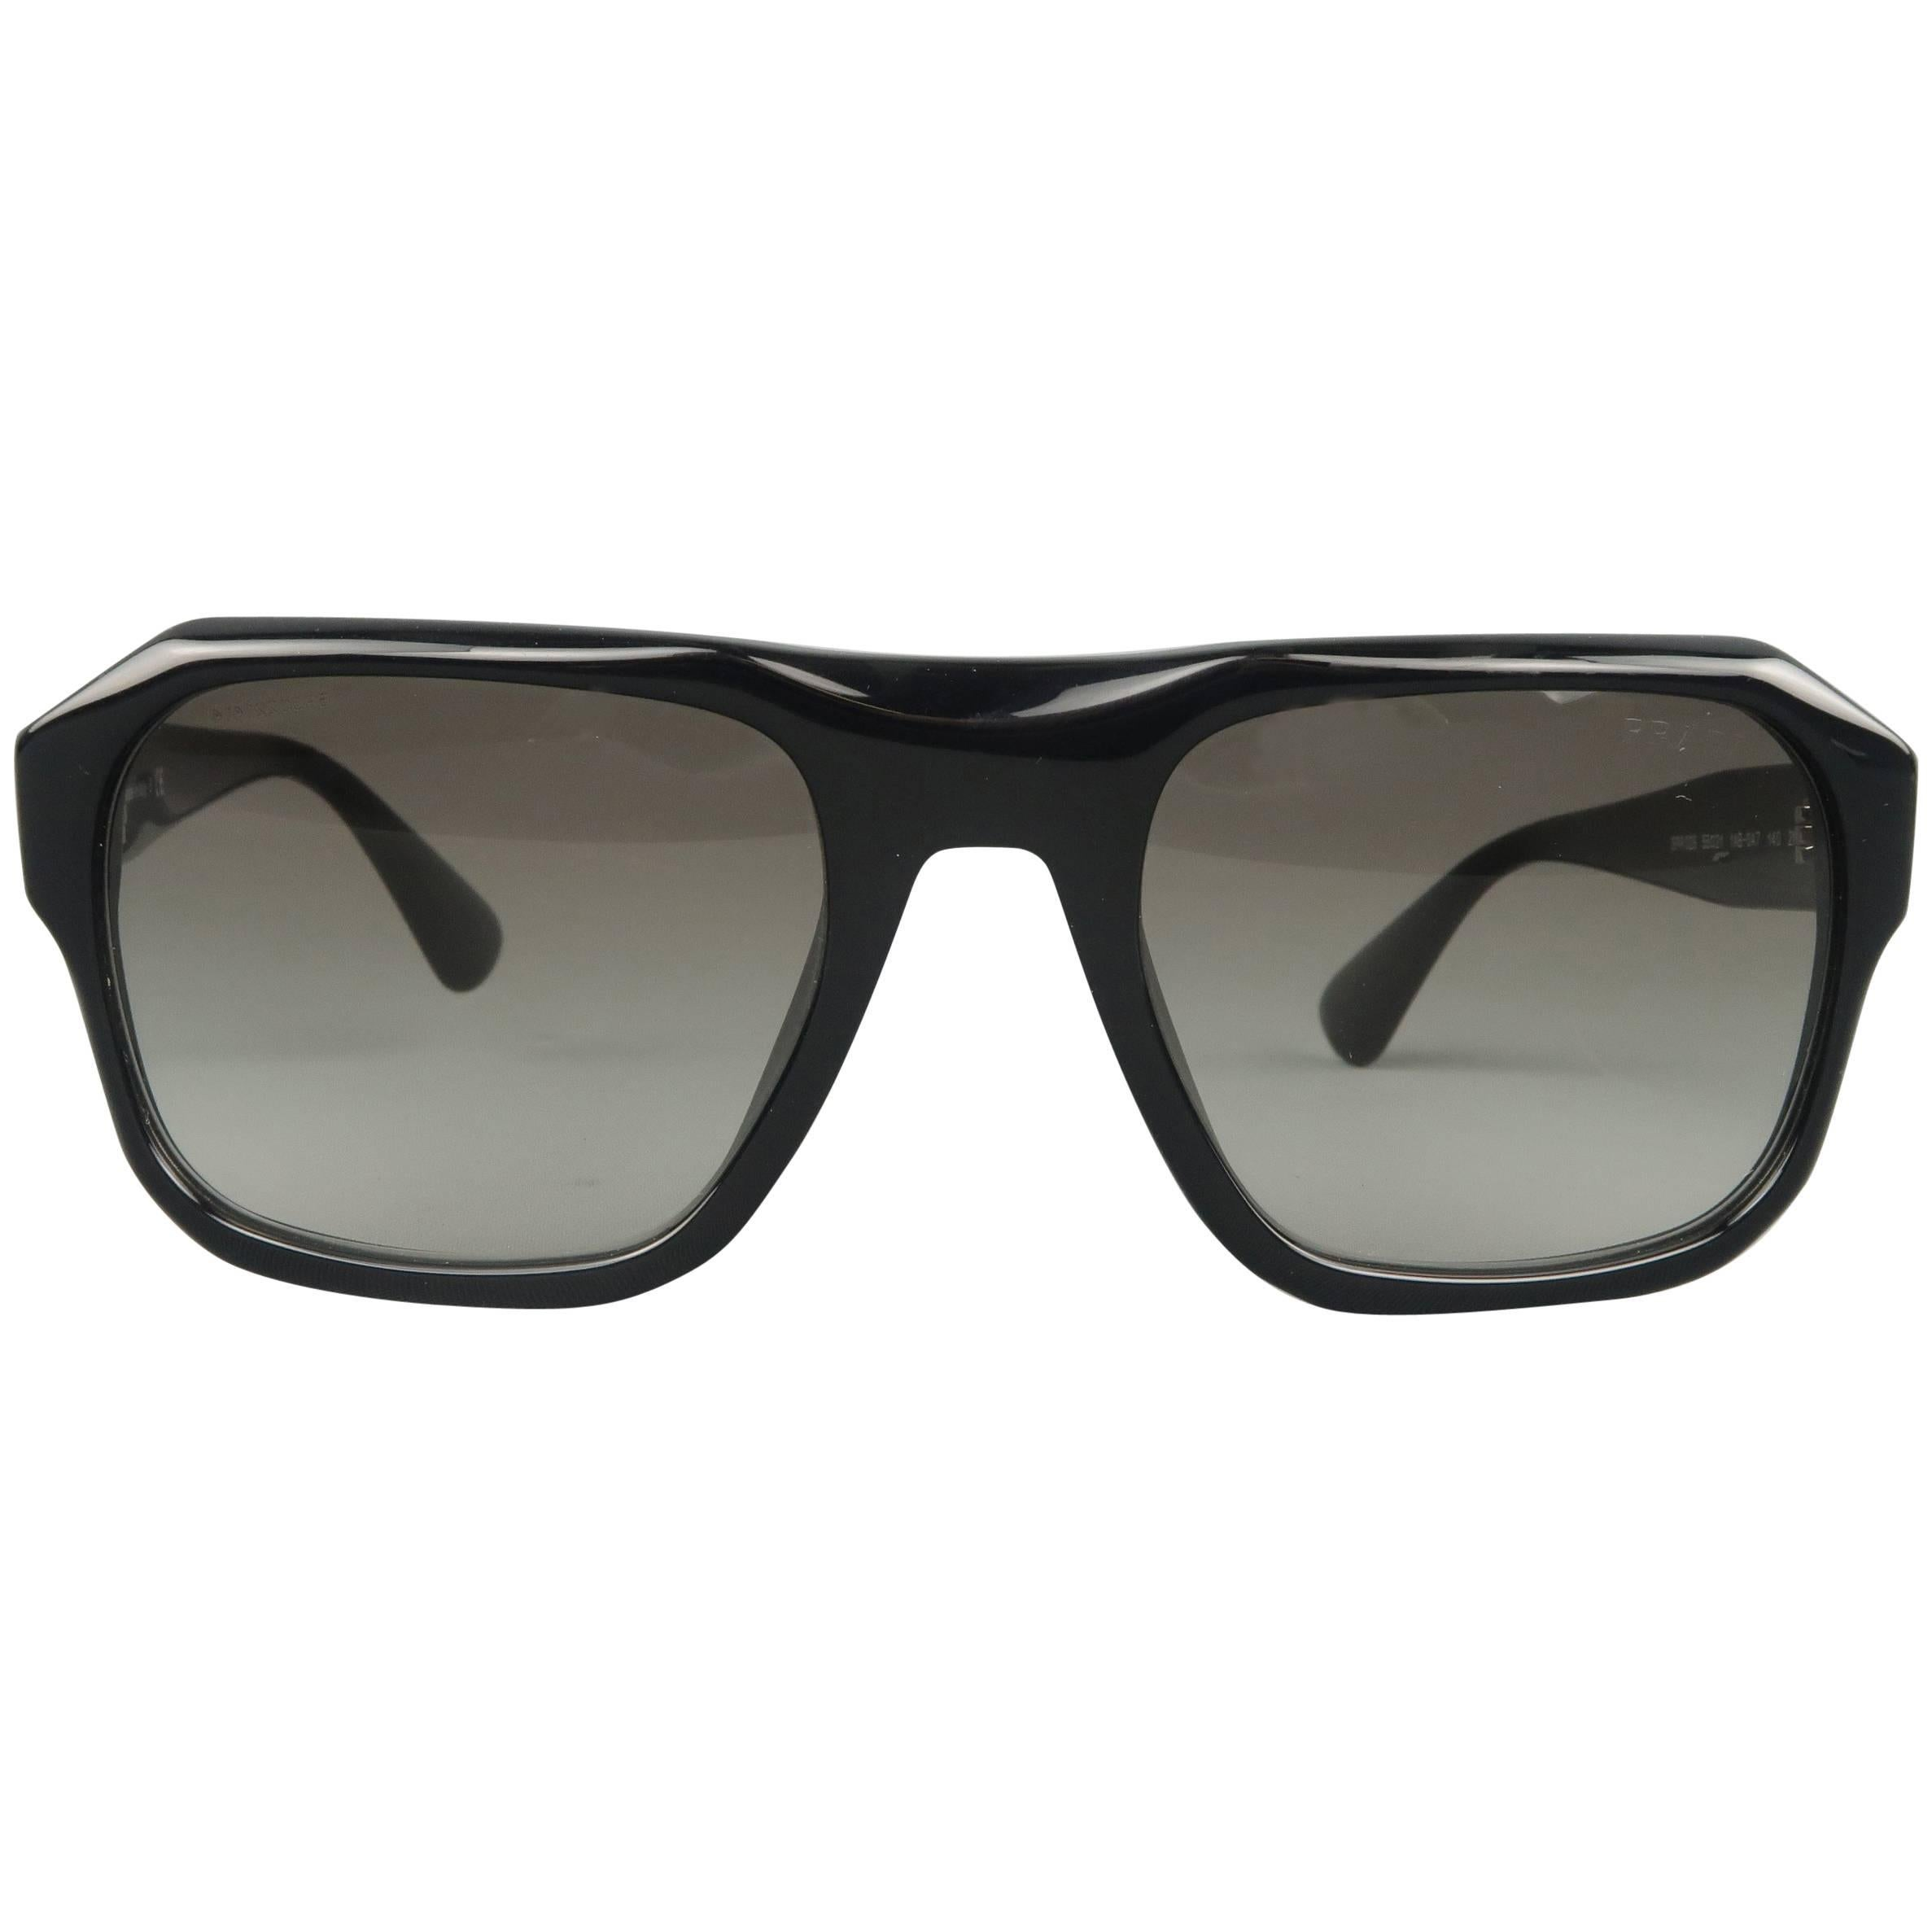 a169cab4f131f ... france prada sunglasses black acetate spr 02s flat top spring for sale  a99db 25eed